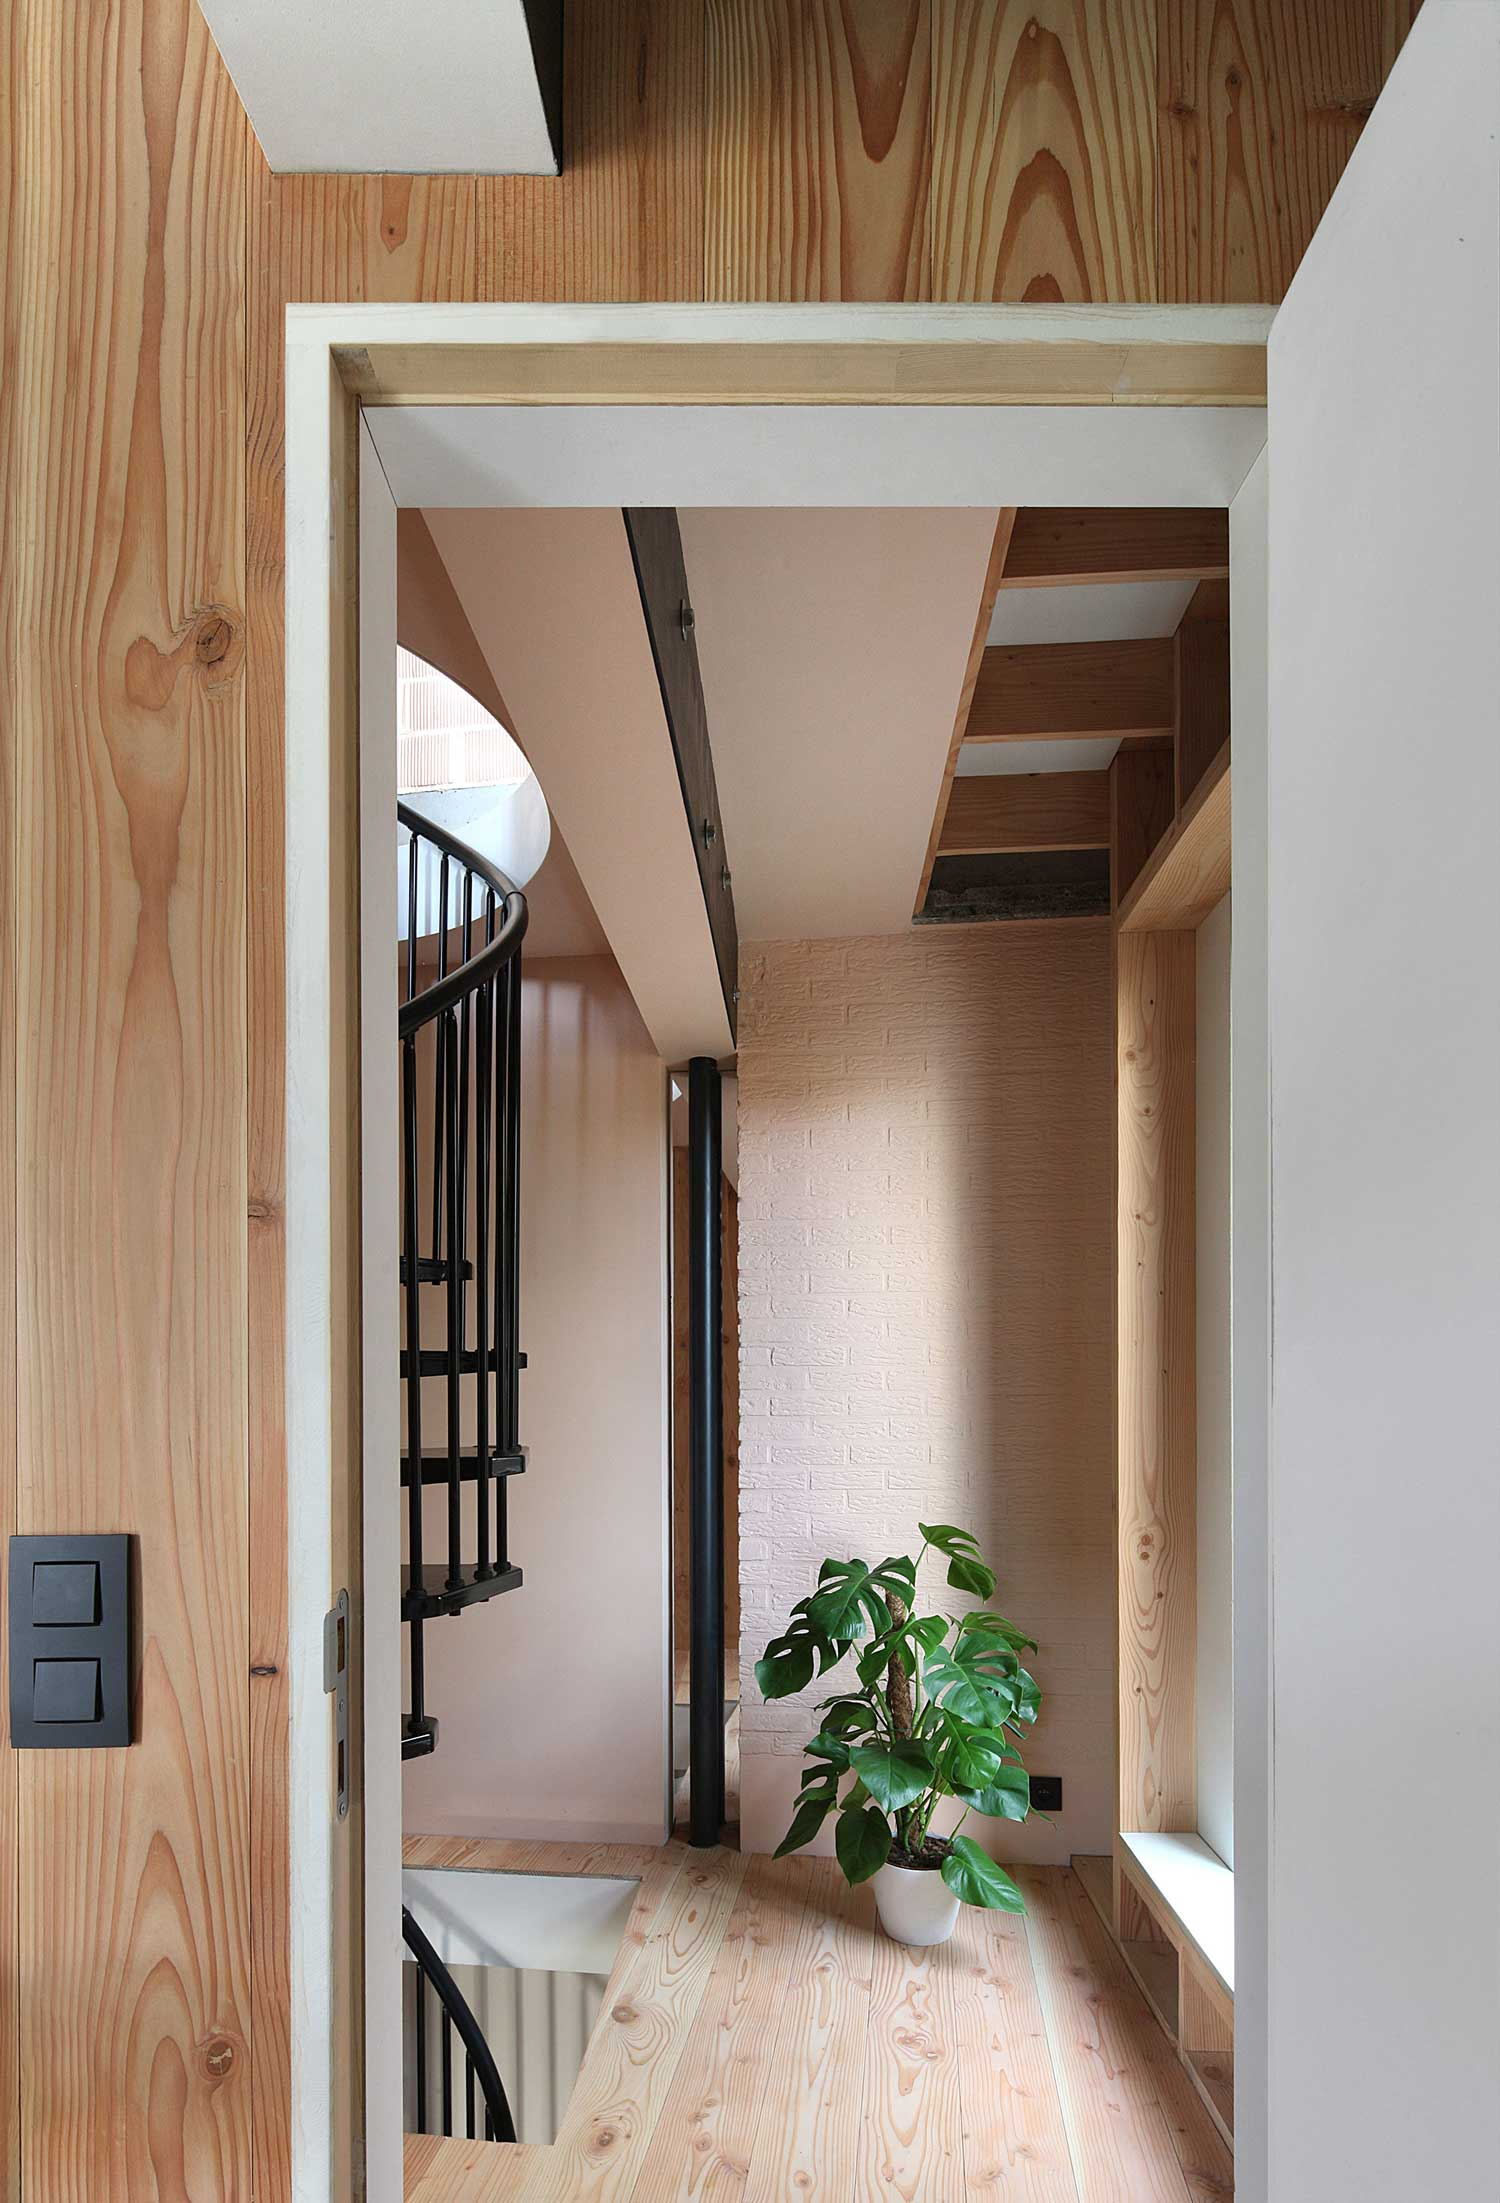 Huik House and B&B in Antwerp, Belgium by Architecten de Vylder Vinck Taillieu | Yellowtrace